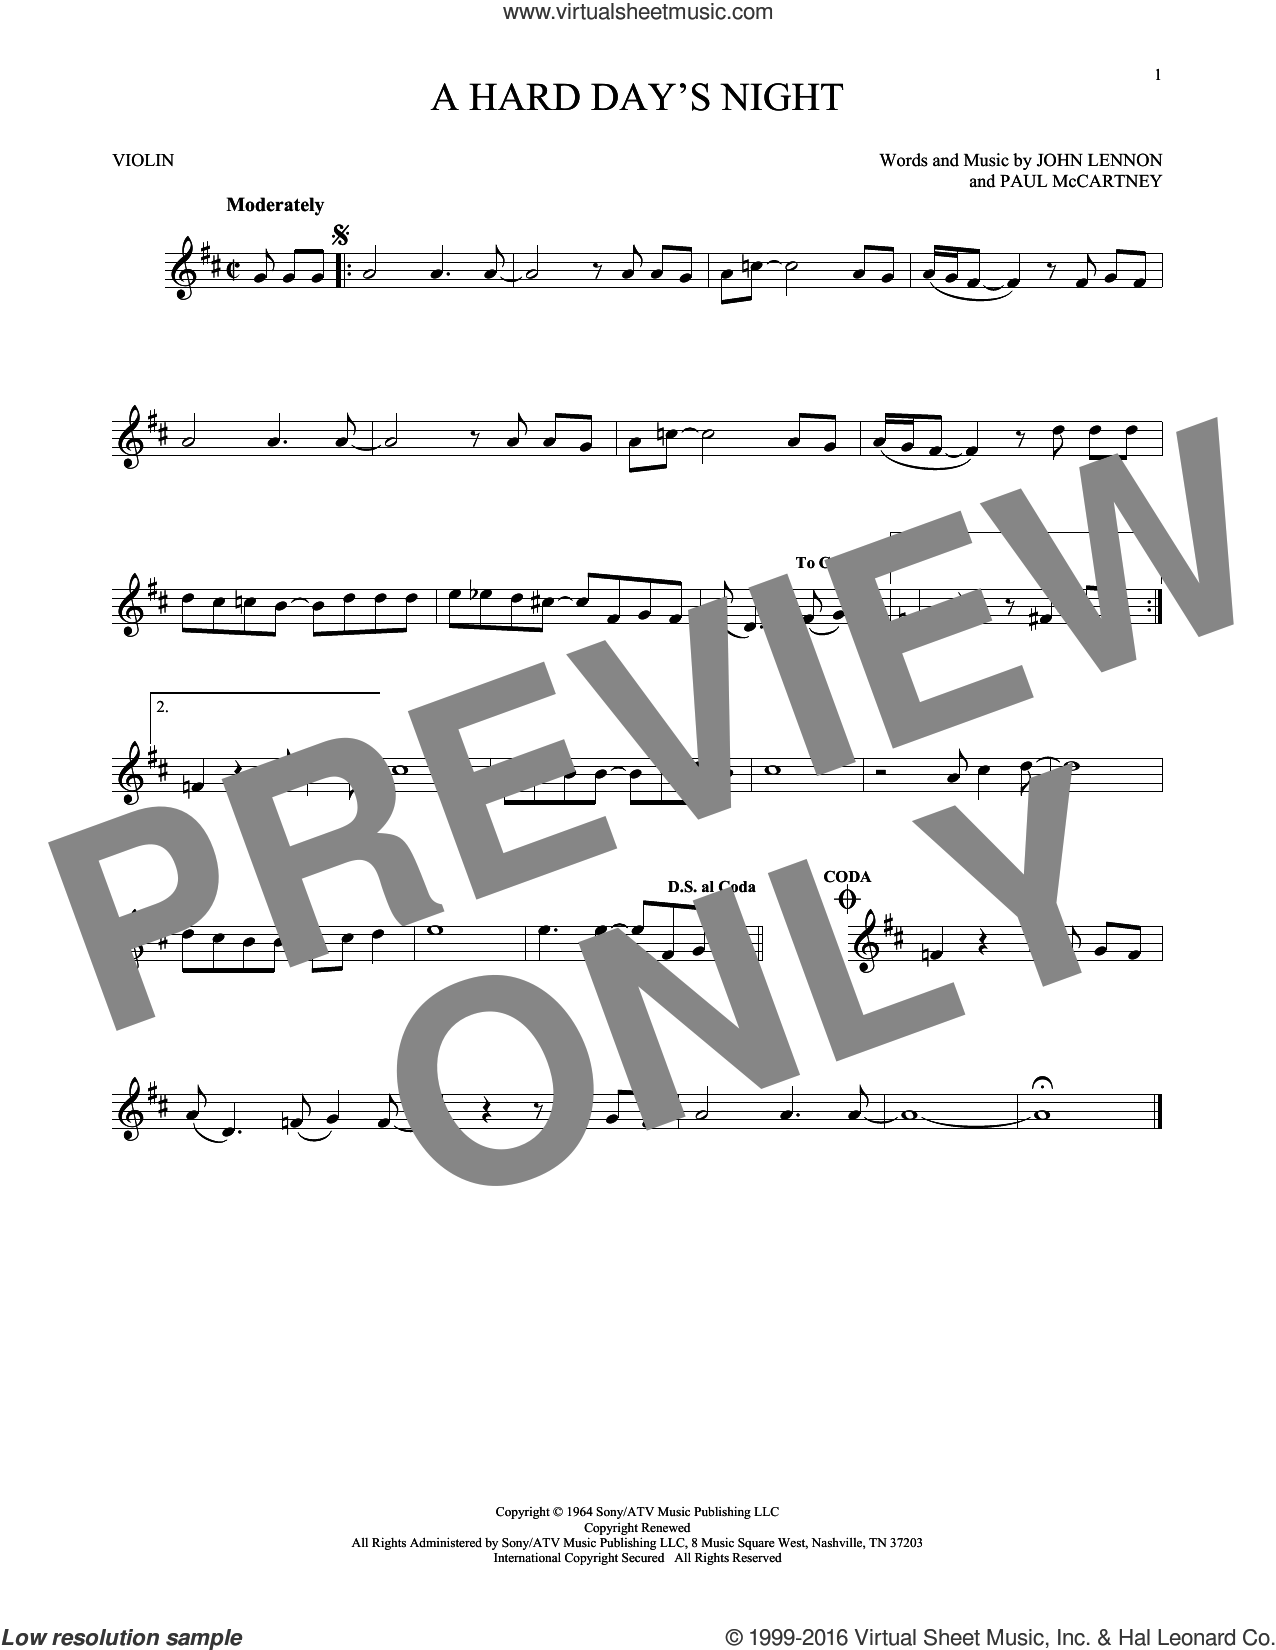 A Hard Day's Night sheet music for violin solo by Paul McCartney